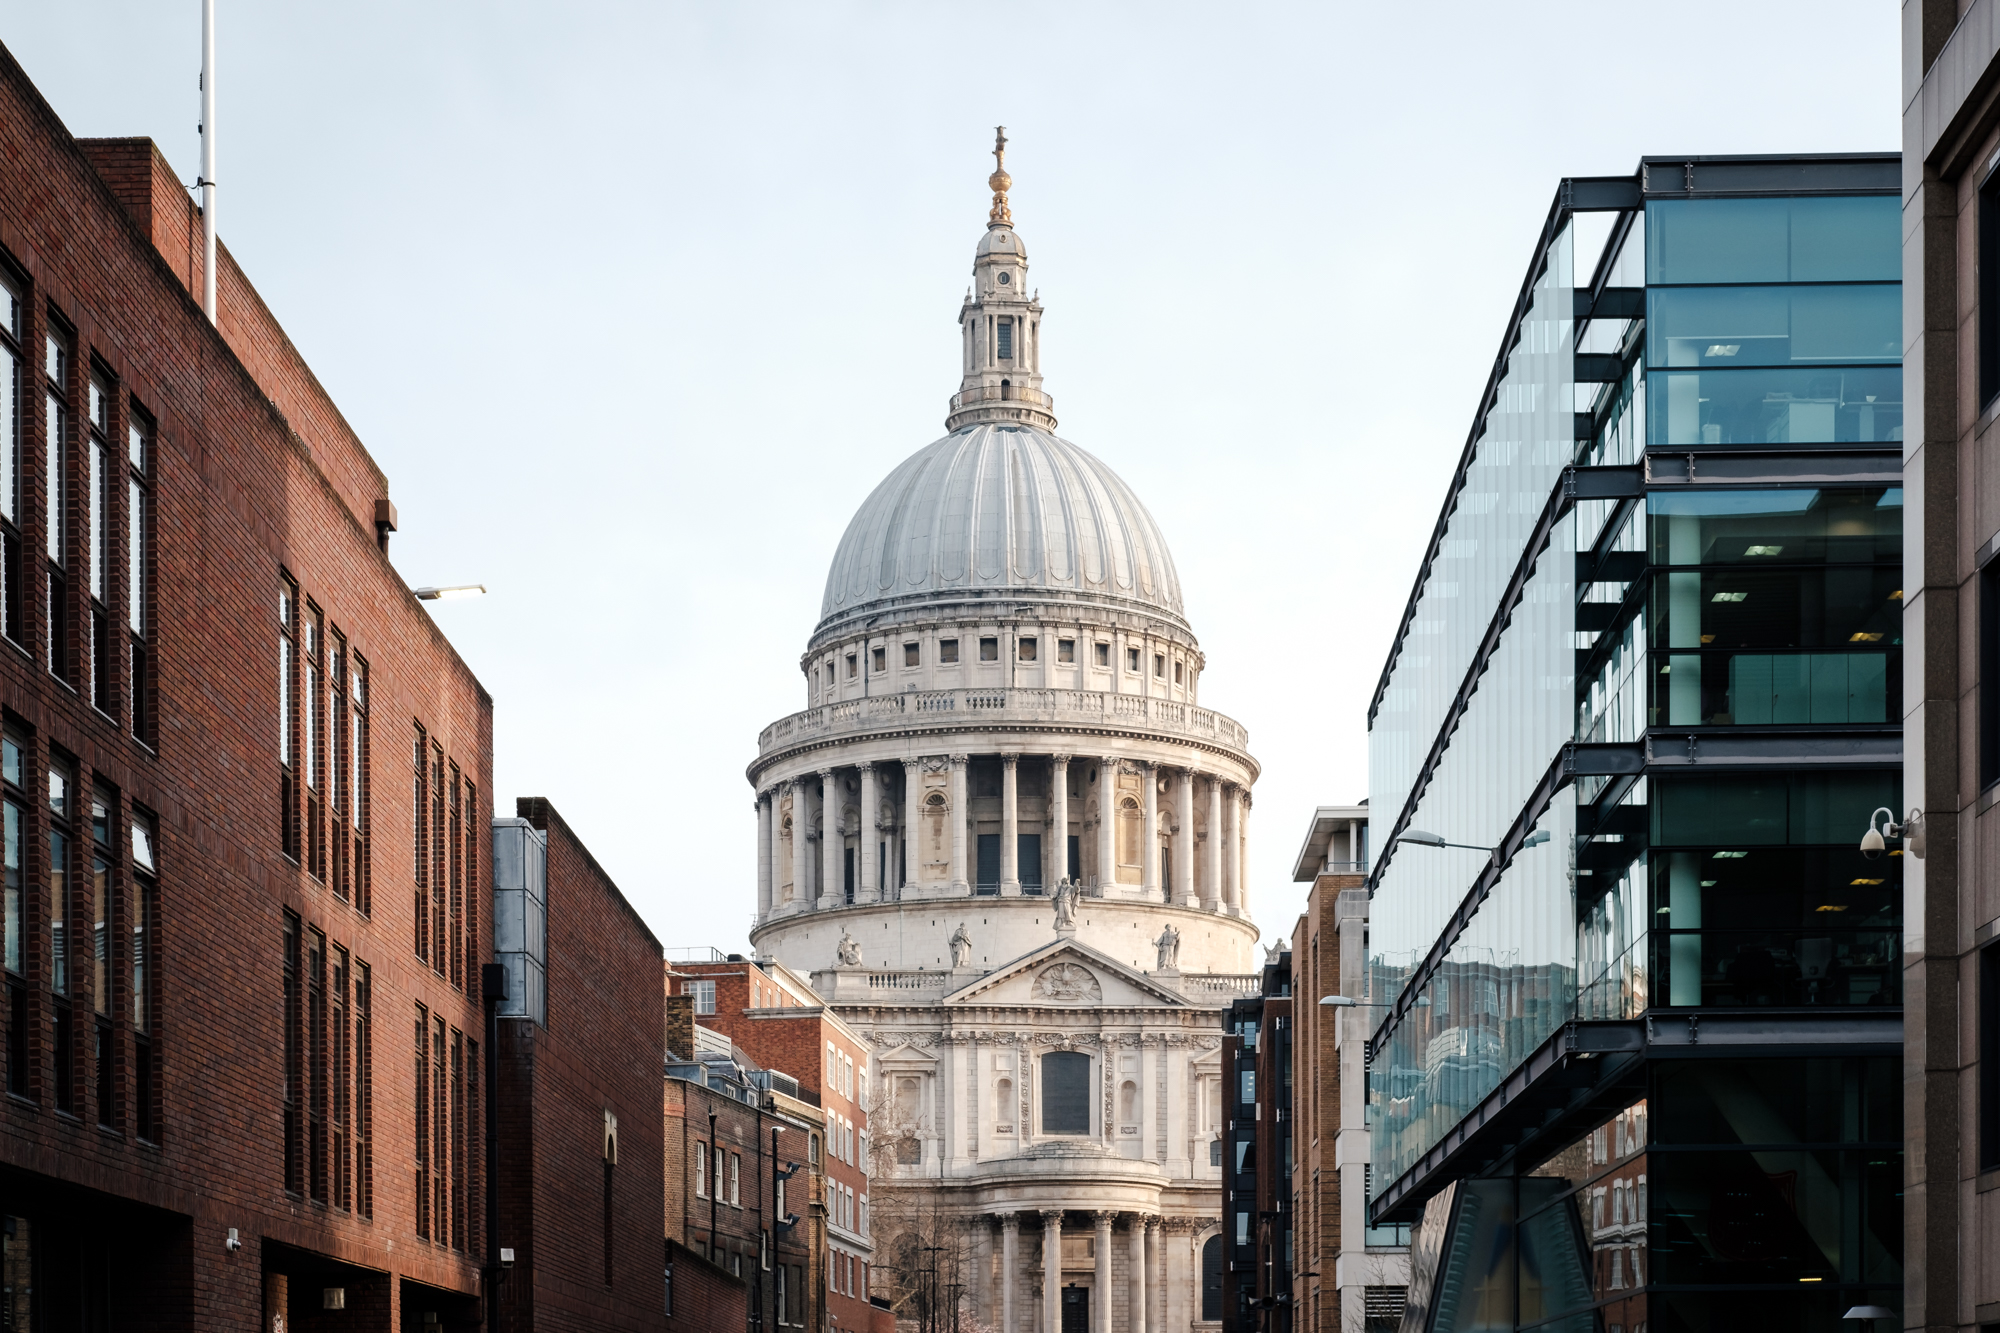 London Chrome photo of St Paul's Cathedral by Trevor Sherwin